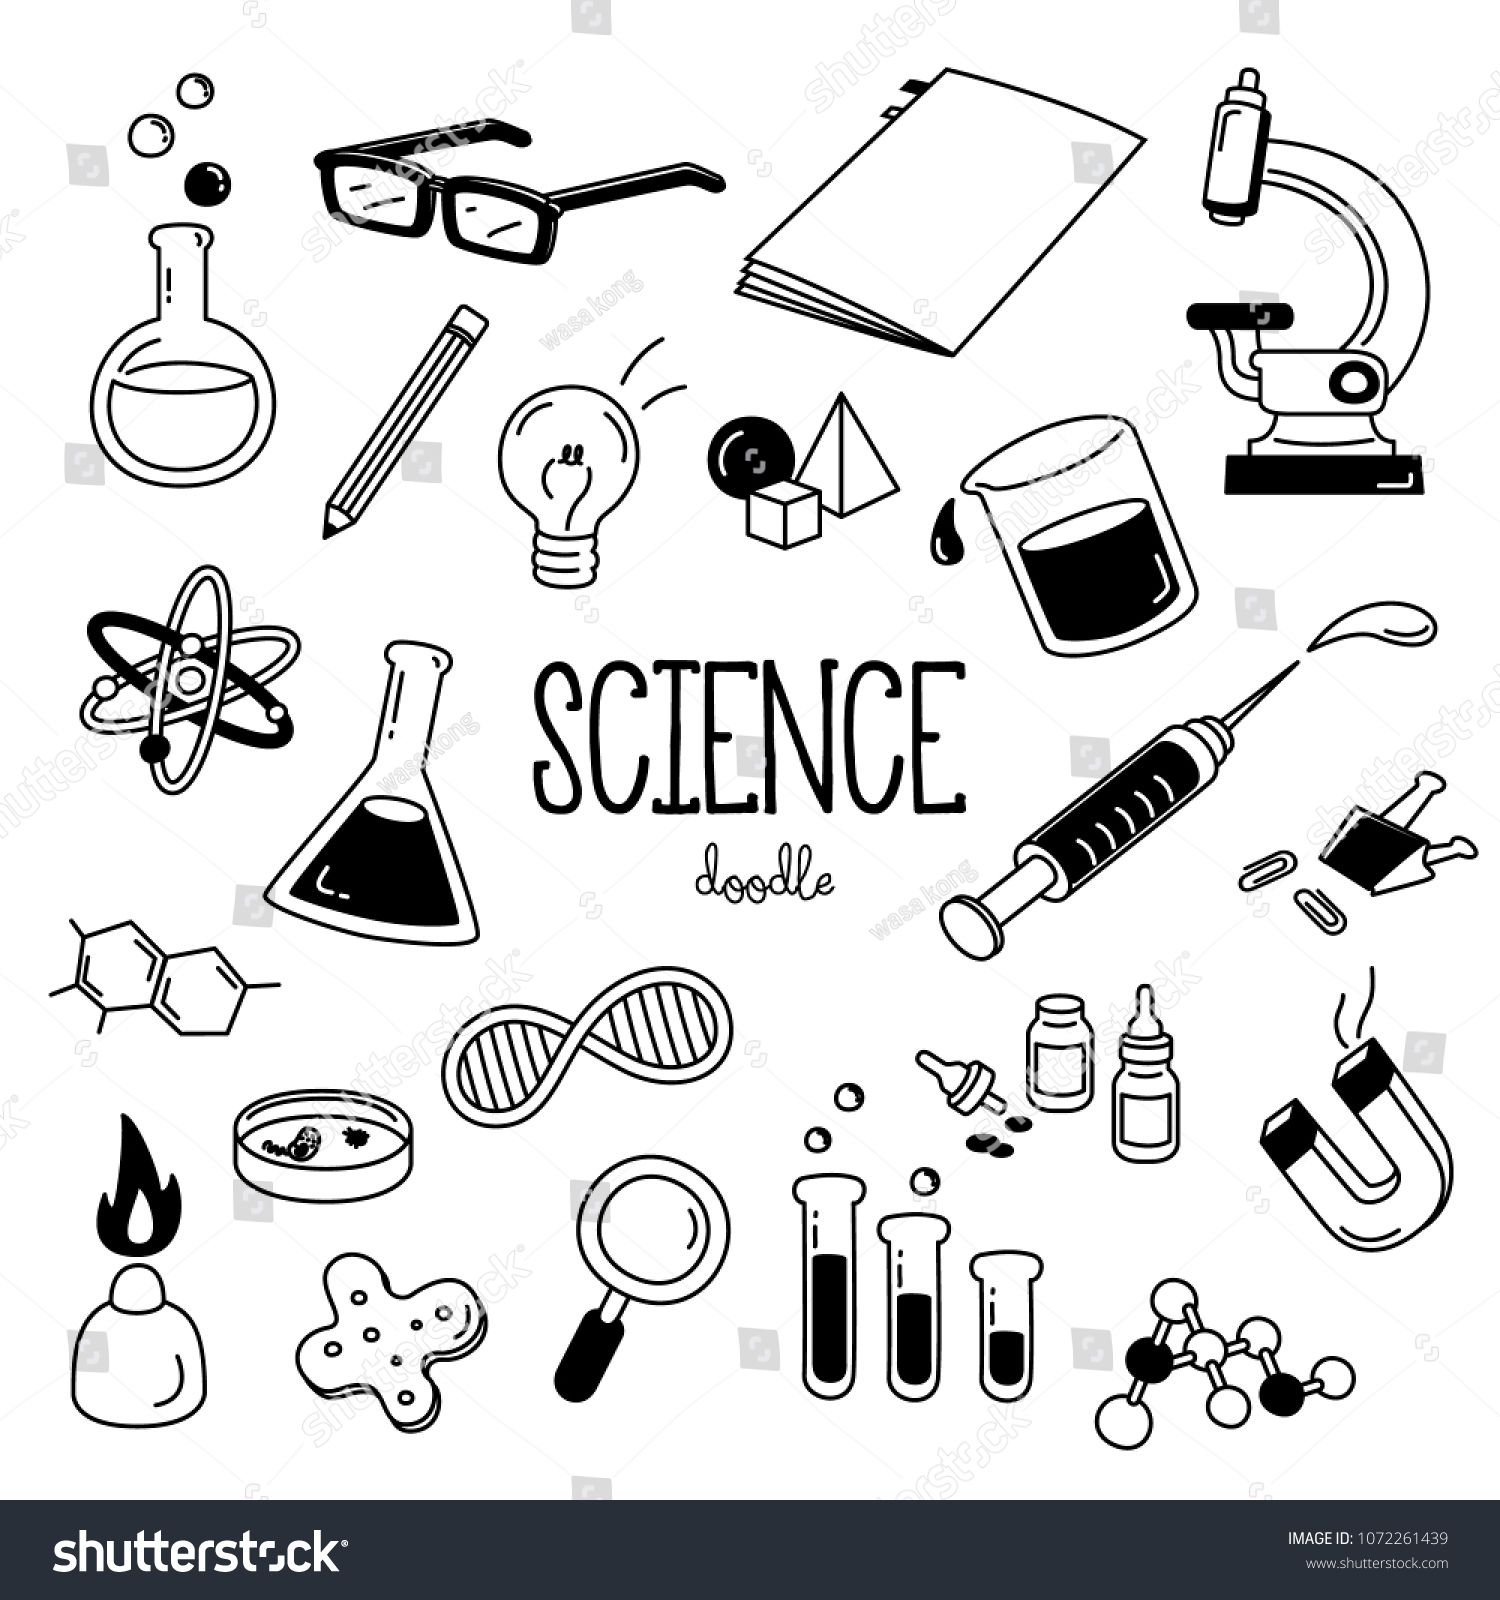 Science Doodle Hand Drawing Styles For Science Objects